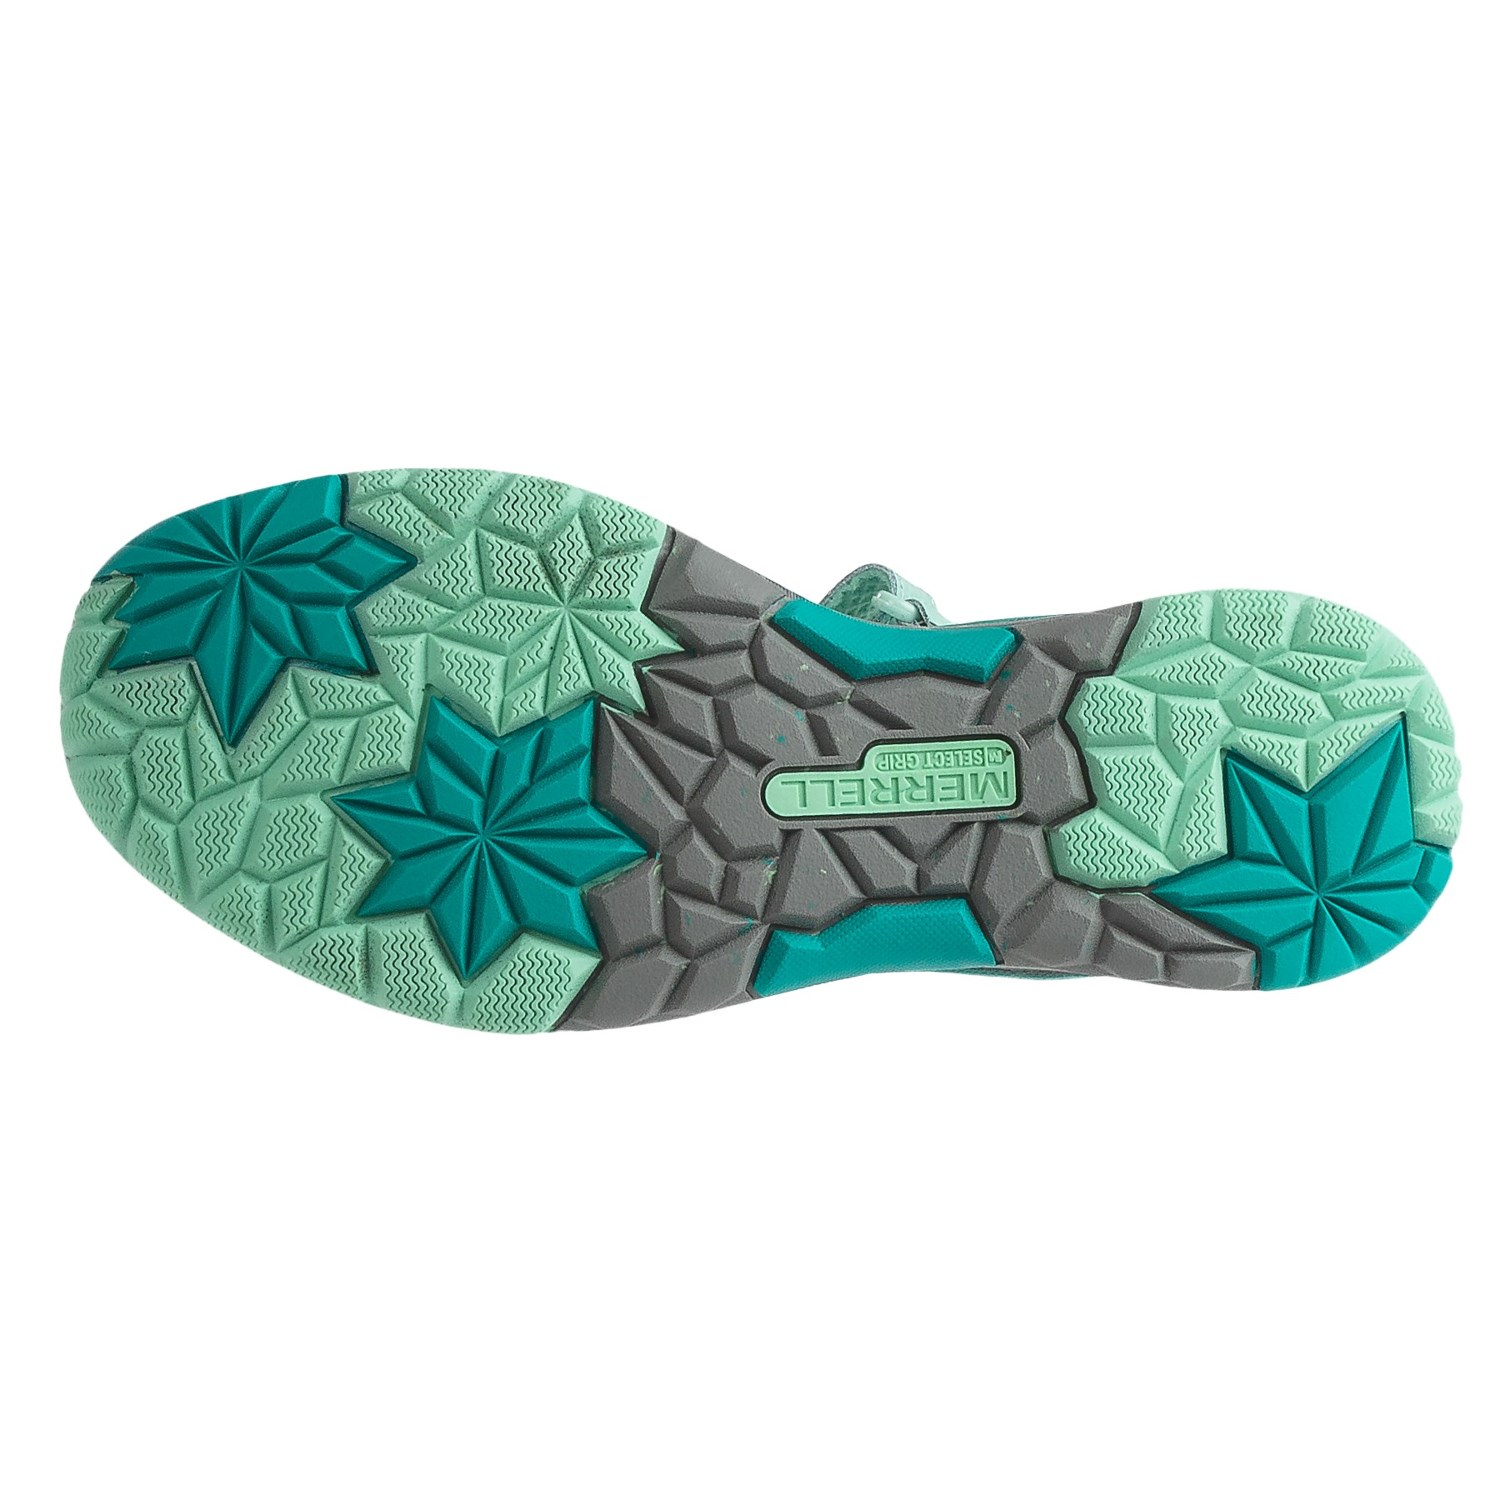 00ea3da81b13 Merrell Hydro Monarch Sandals (For Youth Girls) - Save 50%